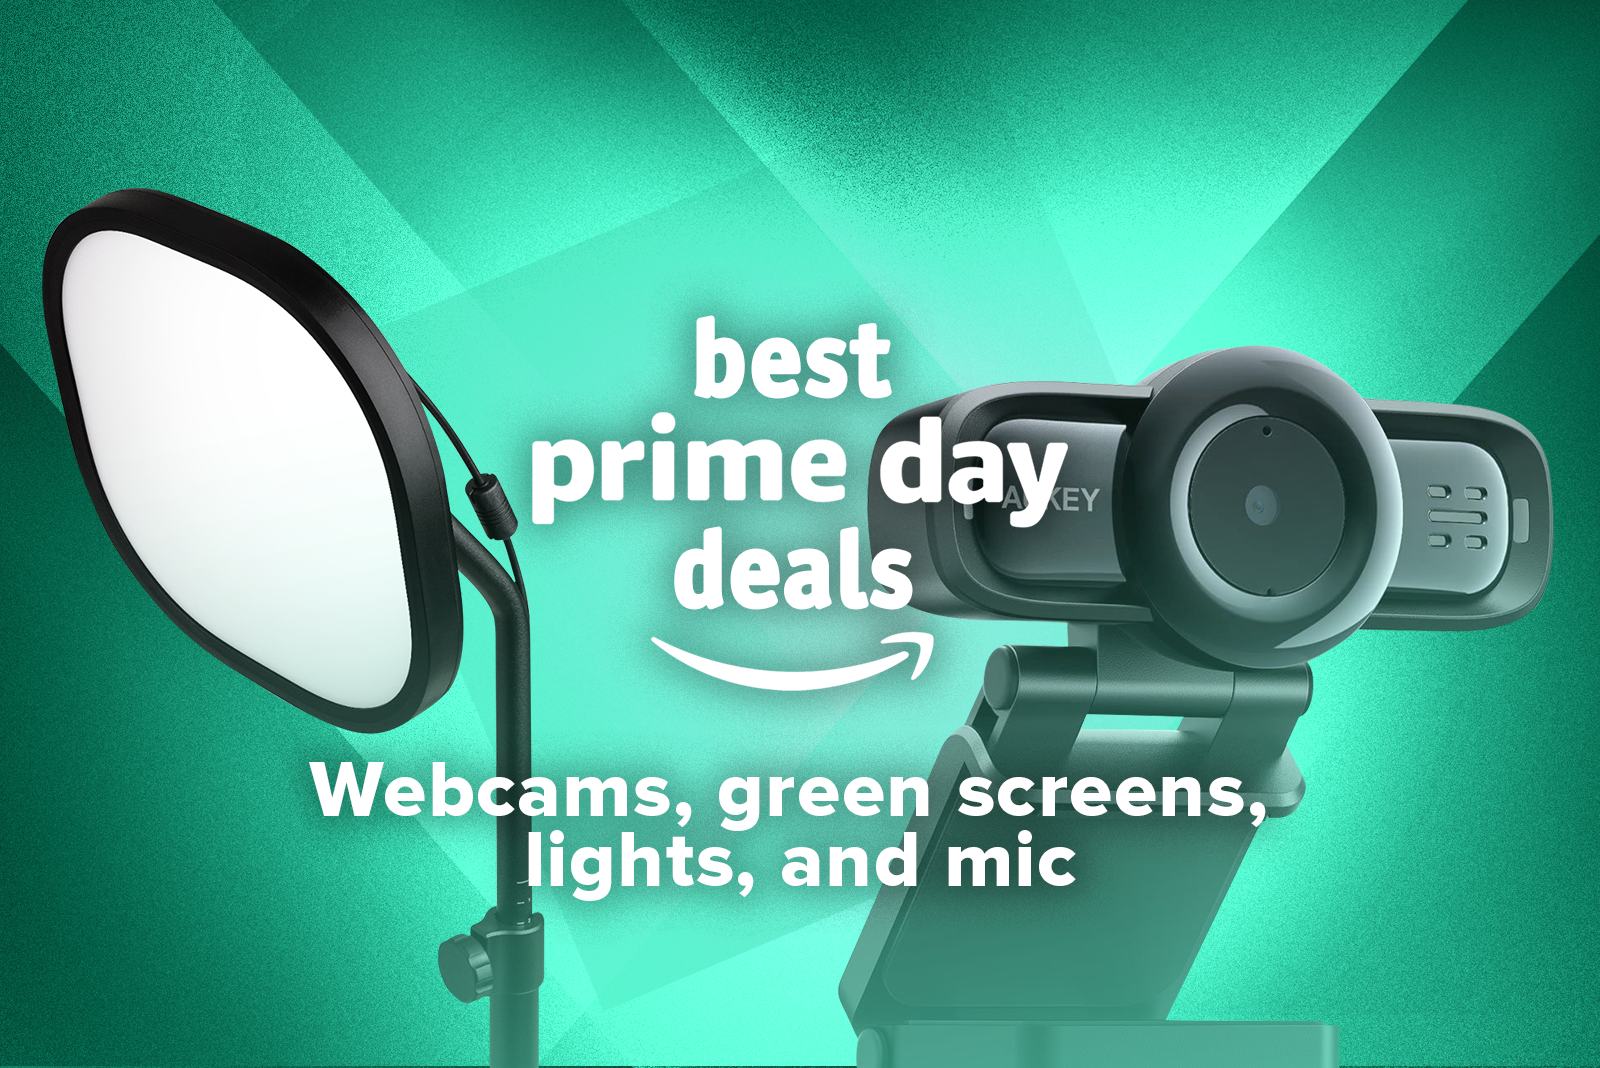 03 Best Prime Day Deals Webcams Green Screens Lights And Mics, Cyber Security